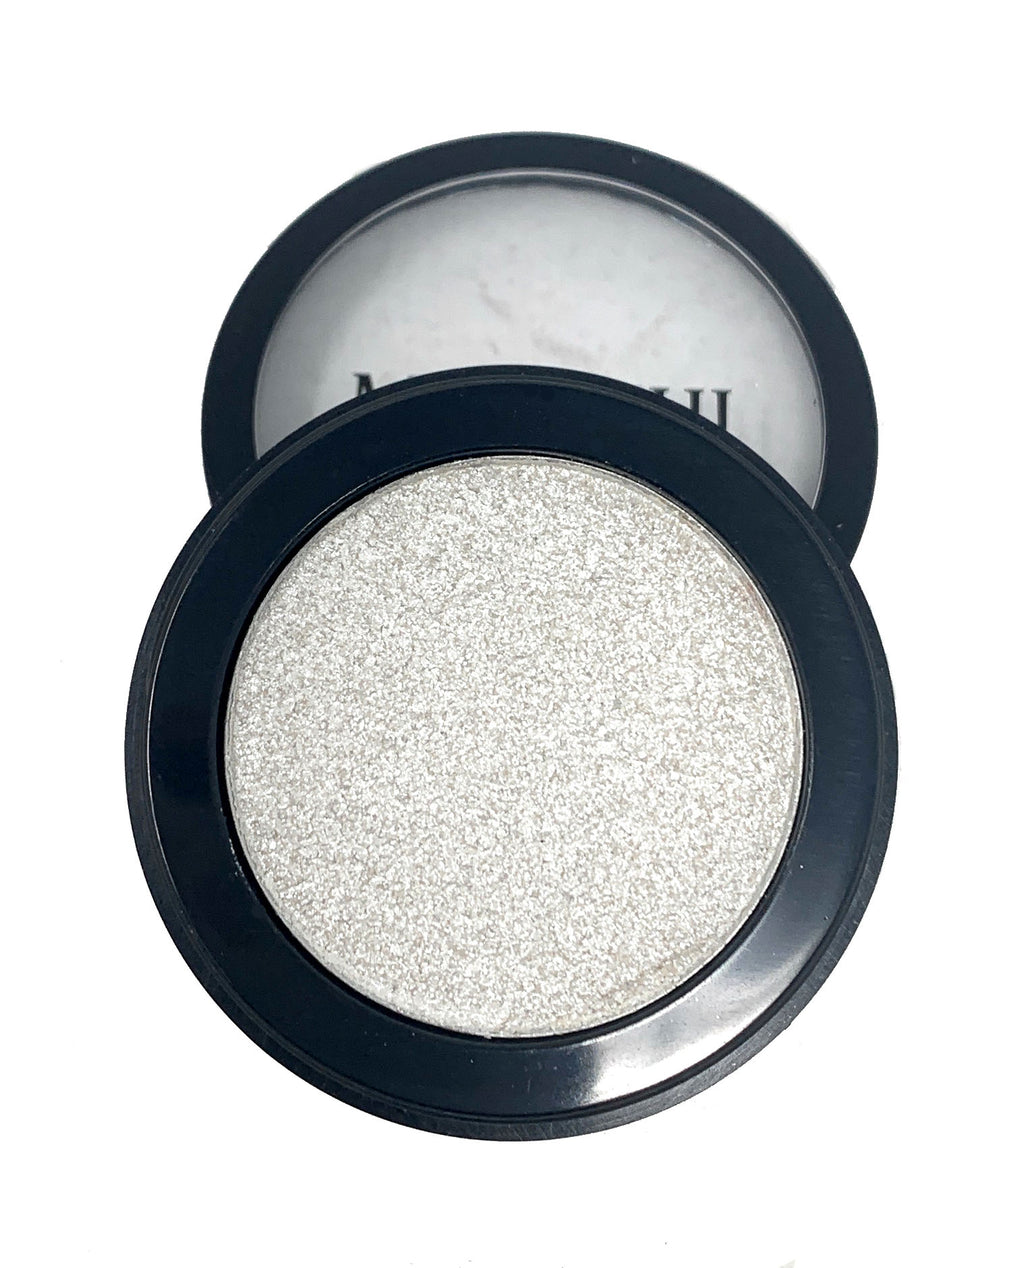 Single Pressed Silver  Foiled Eyeshadow In the Shade Tiara Compact Smooth Pigmented Eyeshadow Colour